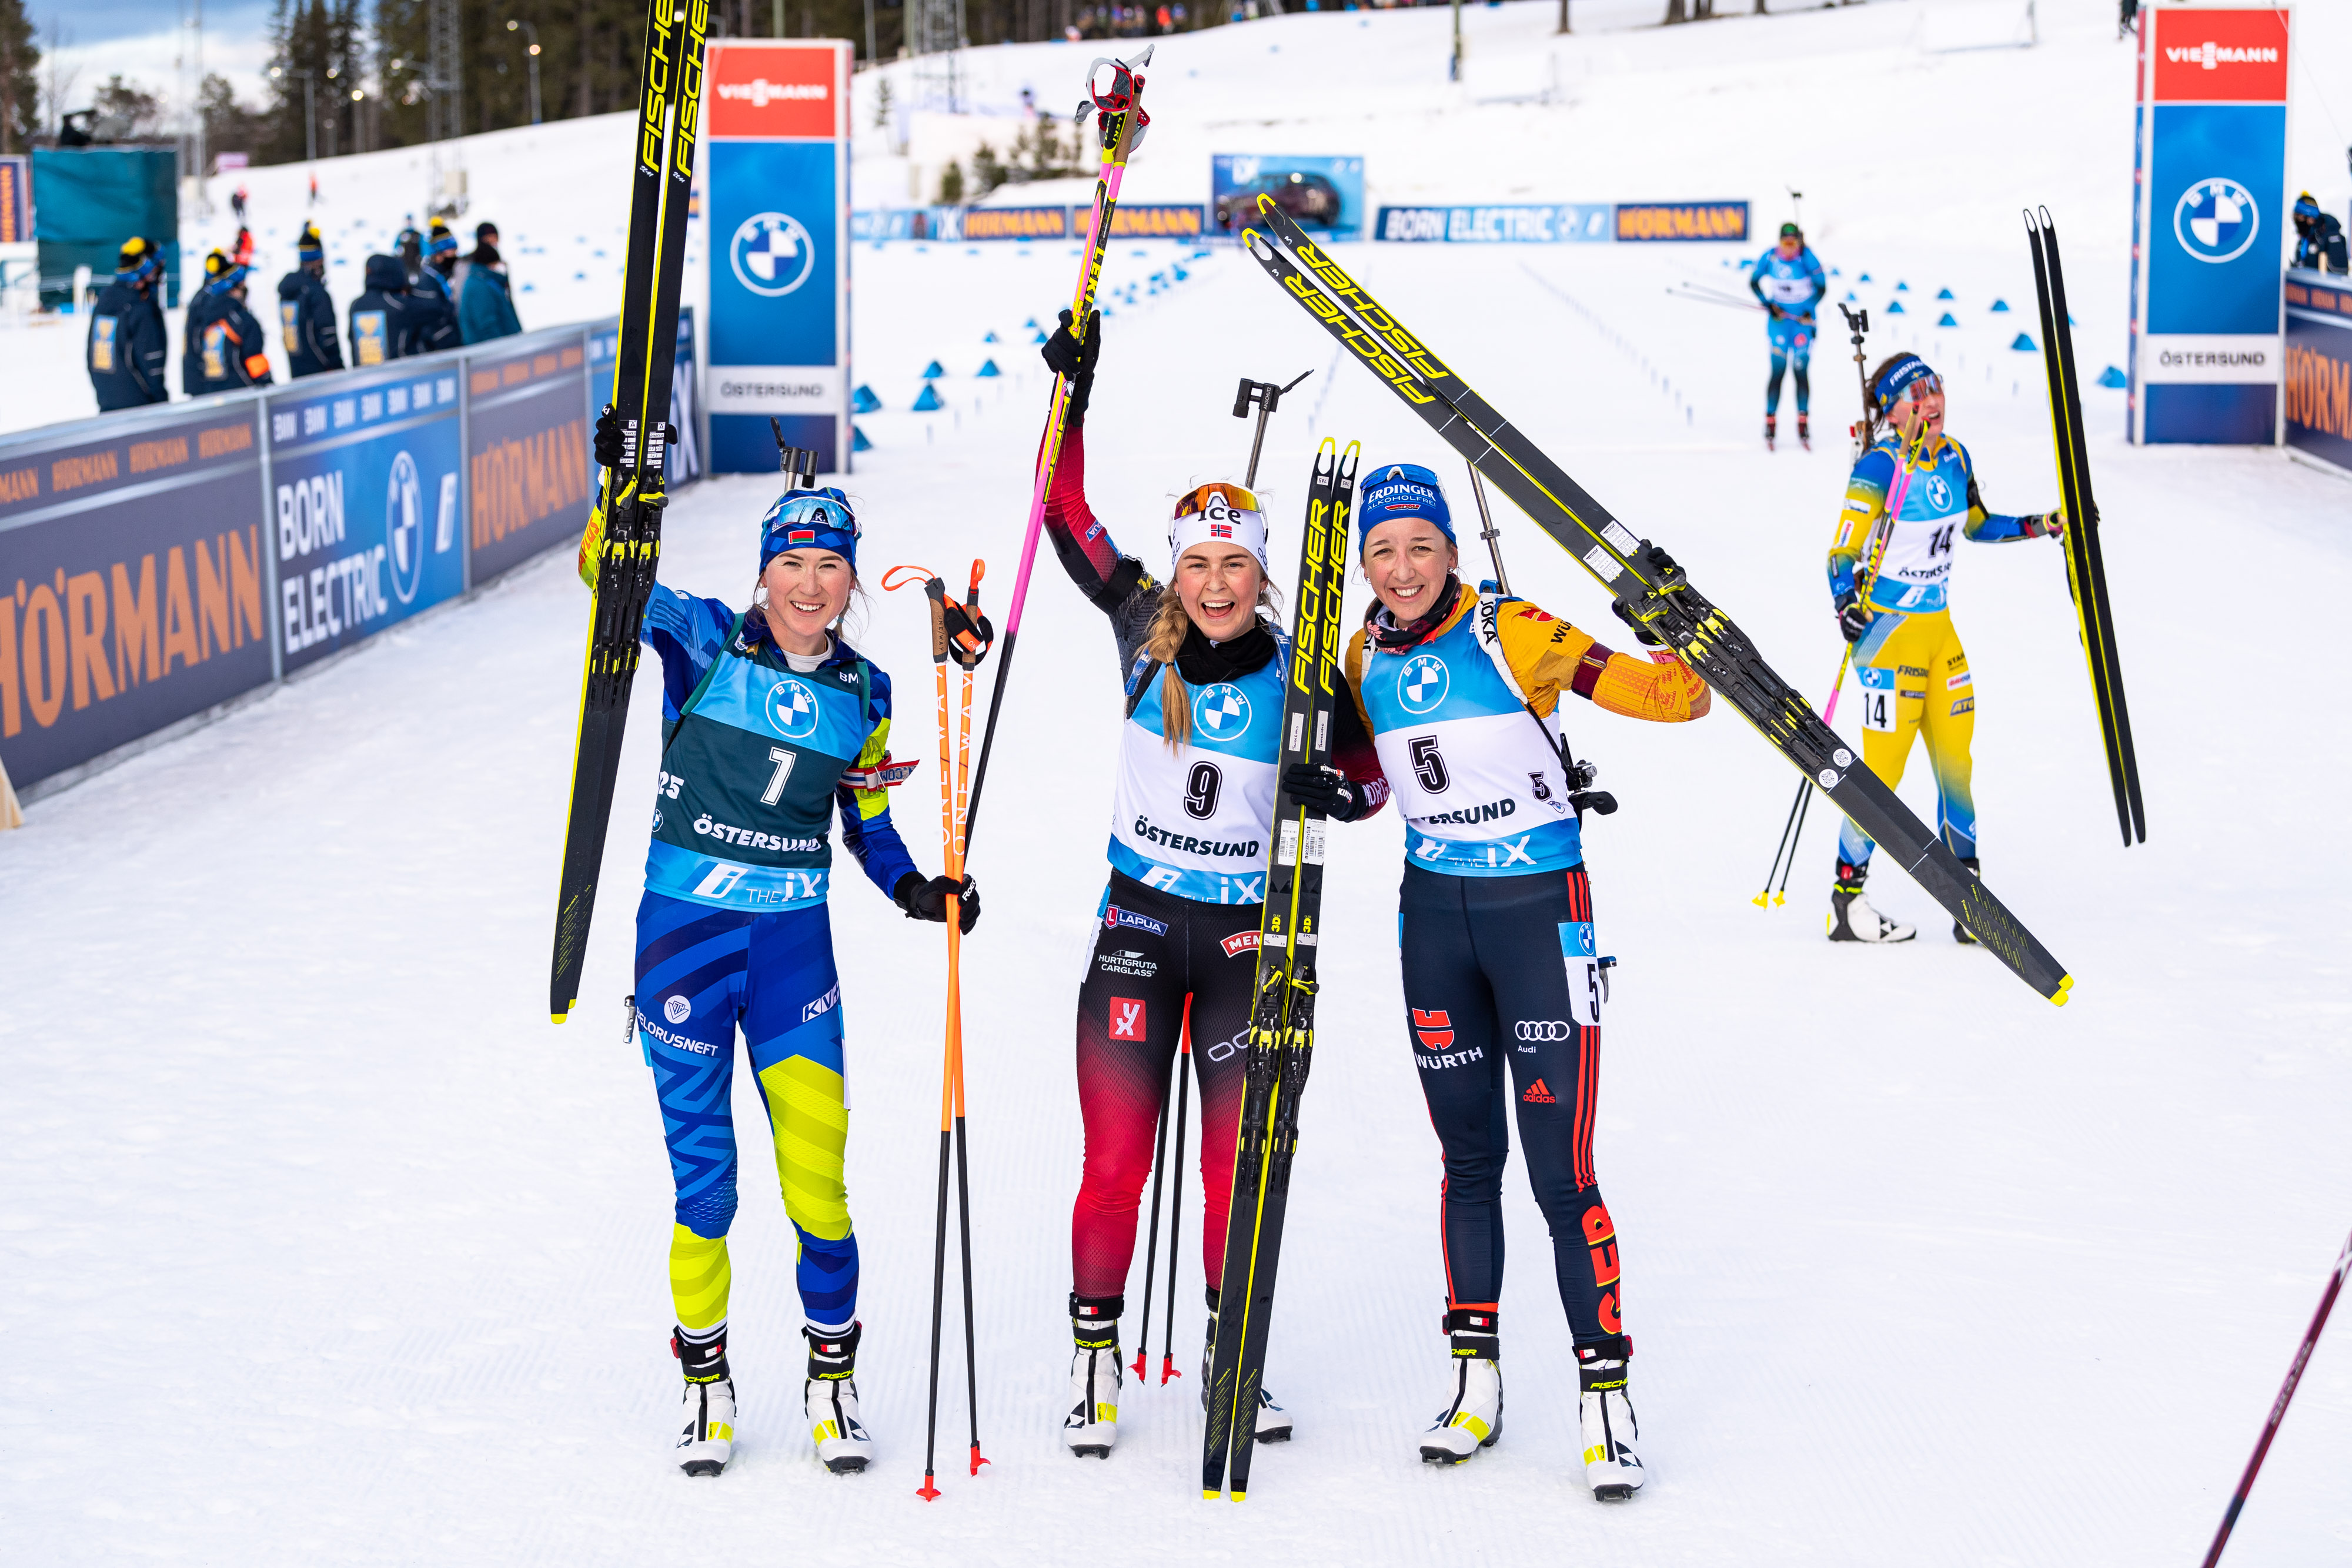 Tandrevold takes victory in mass start in Östersund